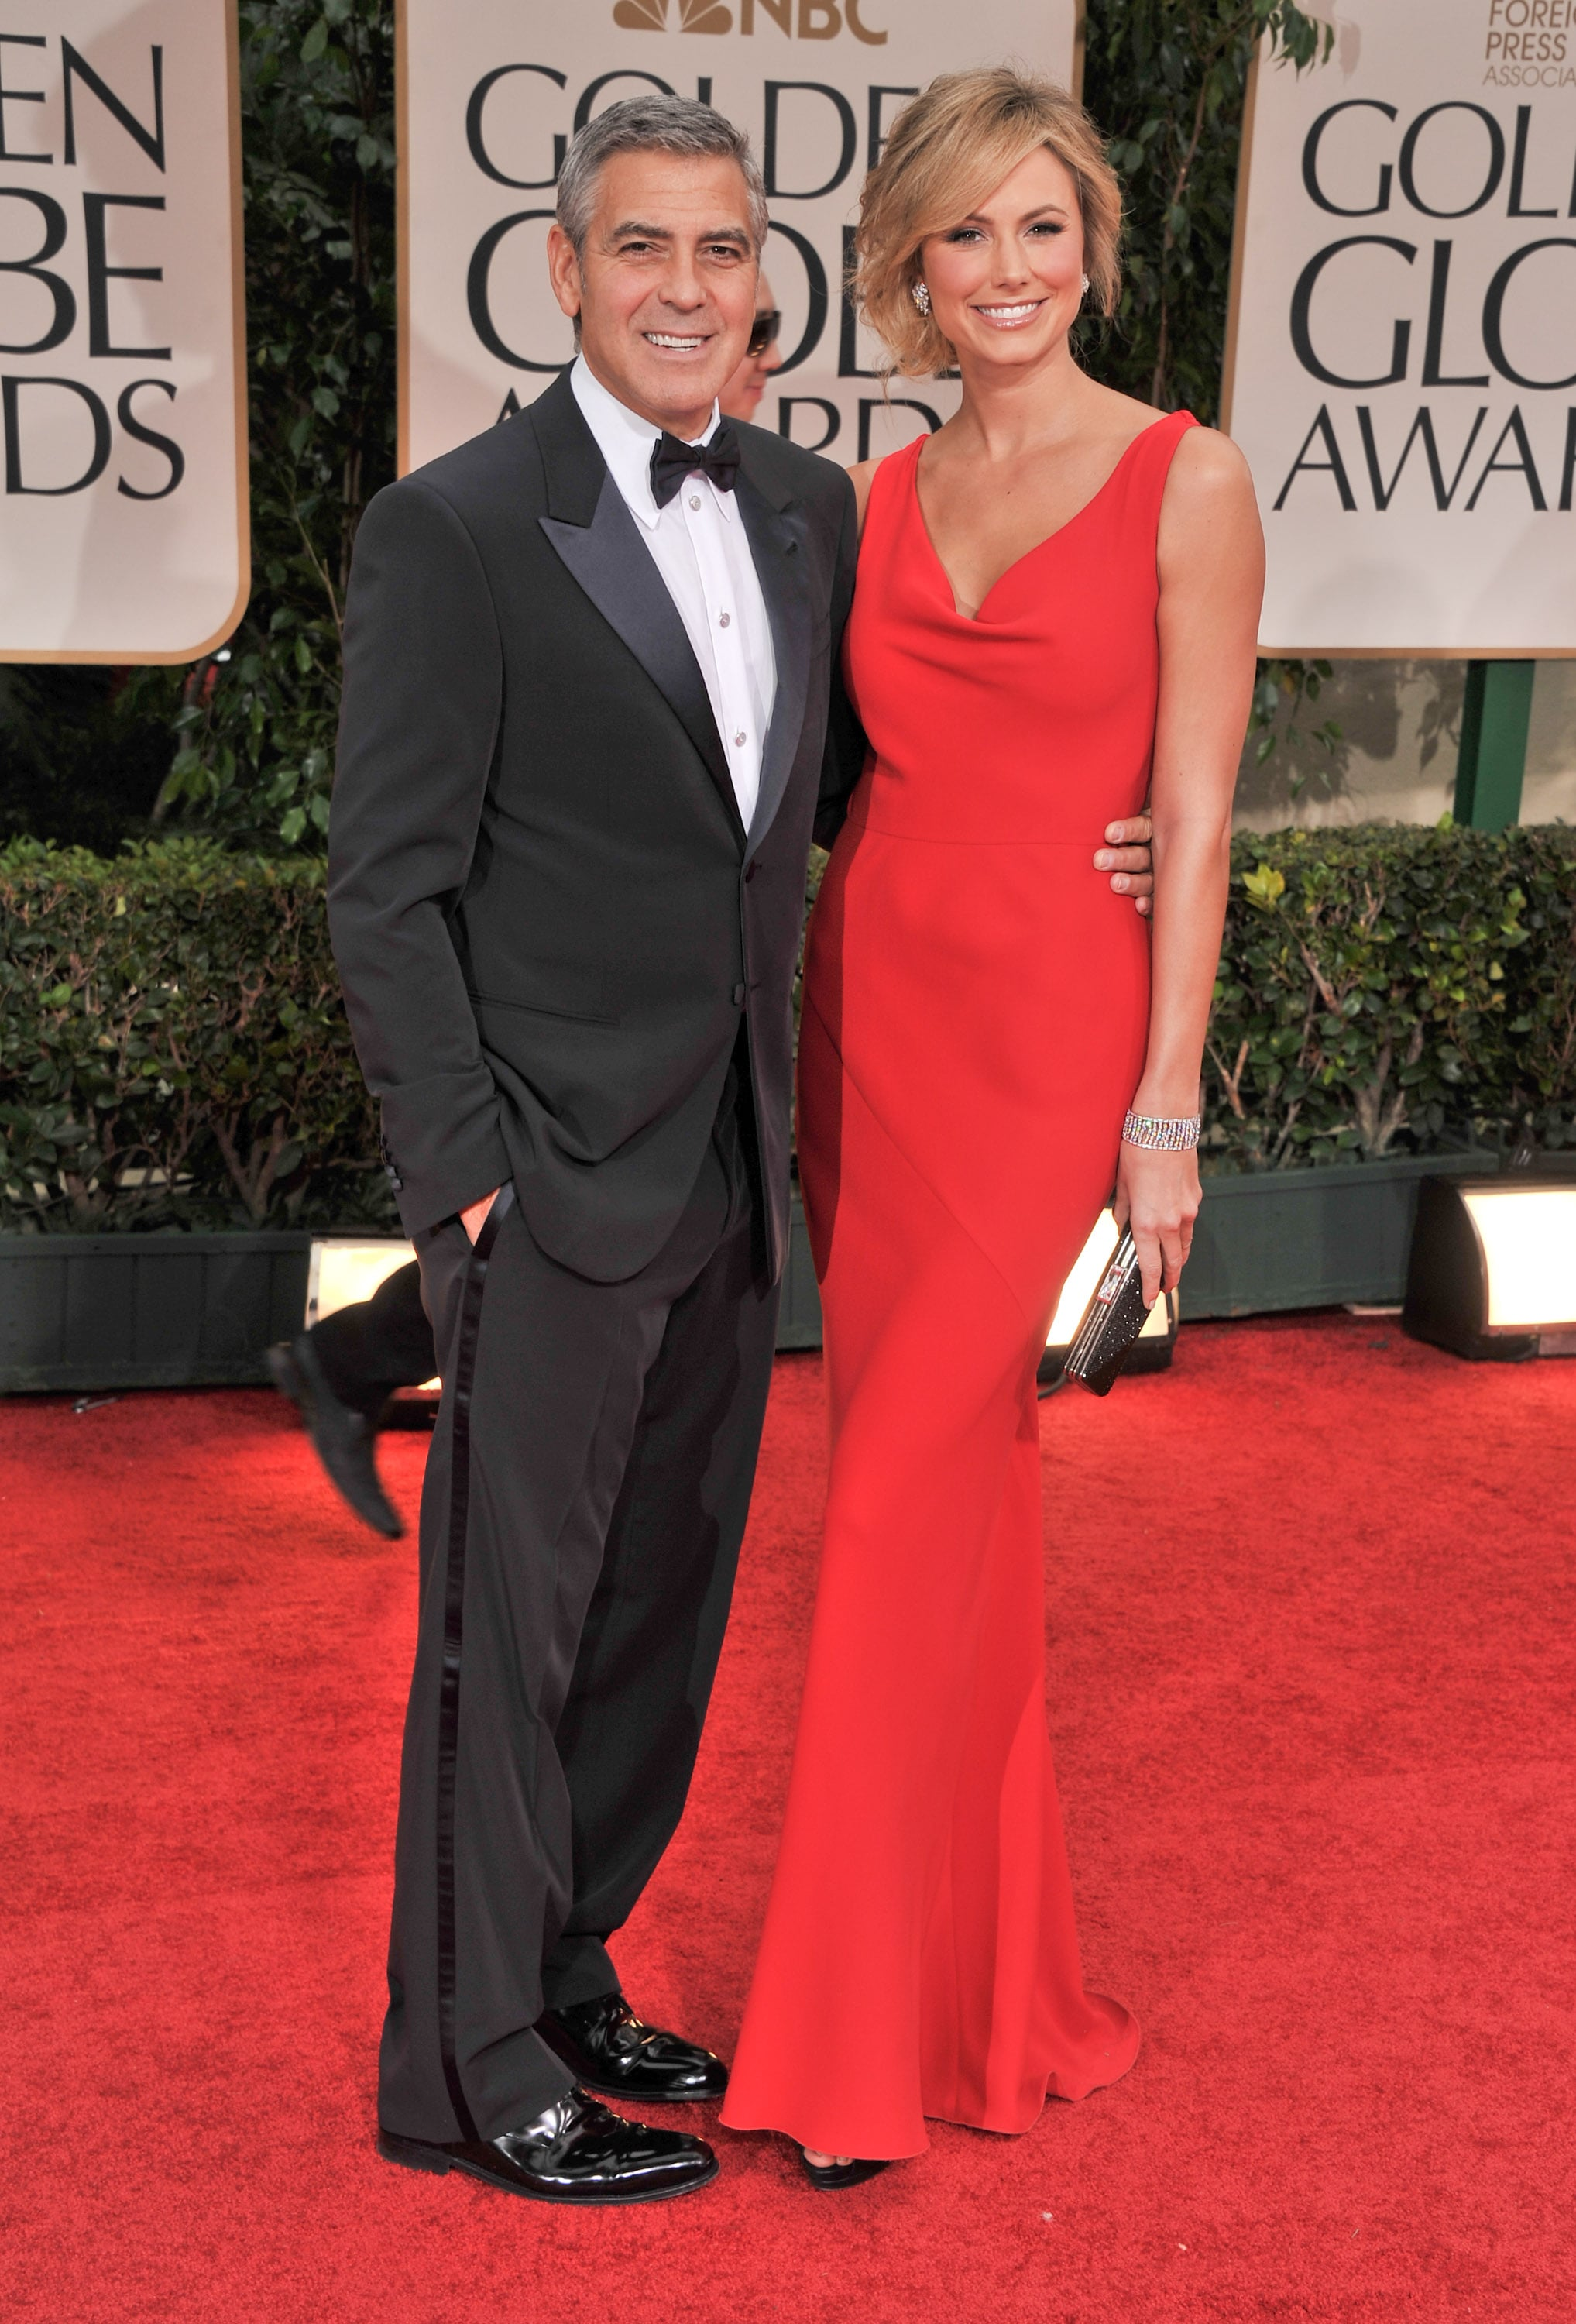 George Clooney escorted Stacy Keibler down the carpet in 2012.